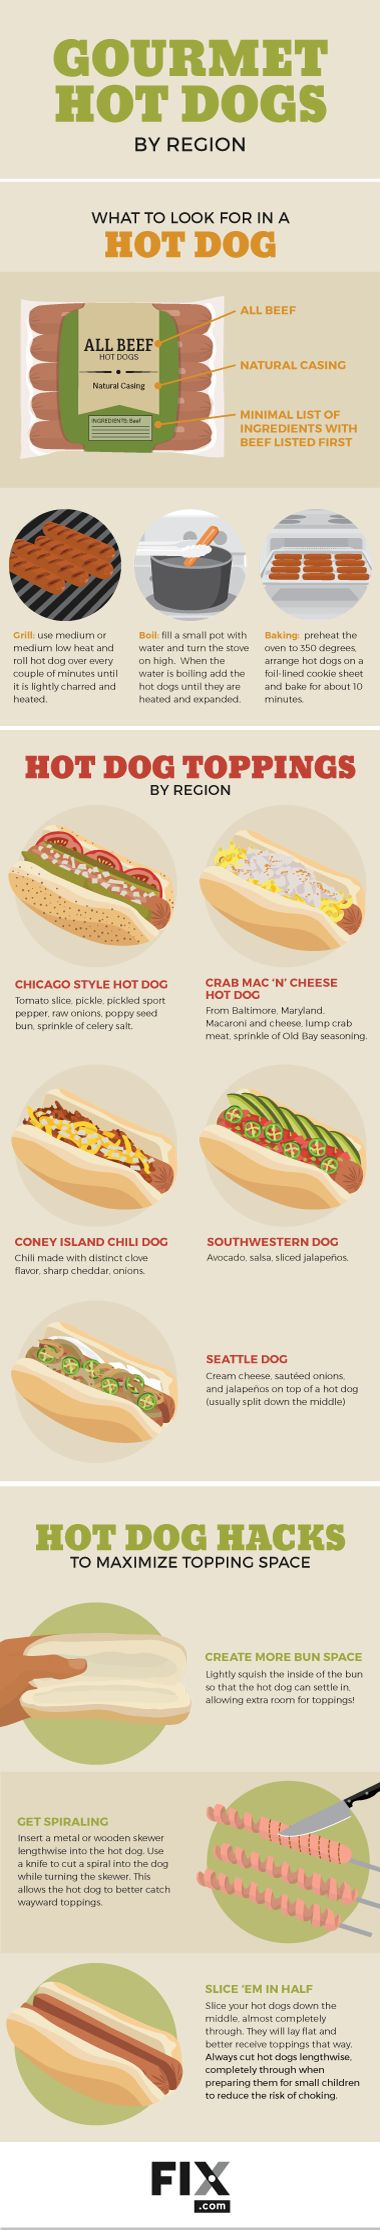 Gourmet Hot Dogs by Region: Chicago, Seattle, and More!